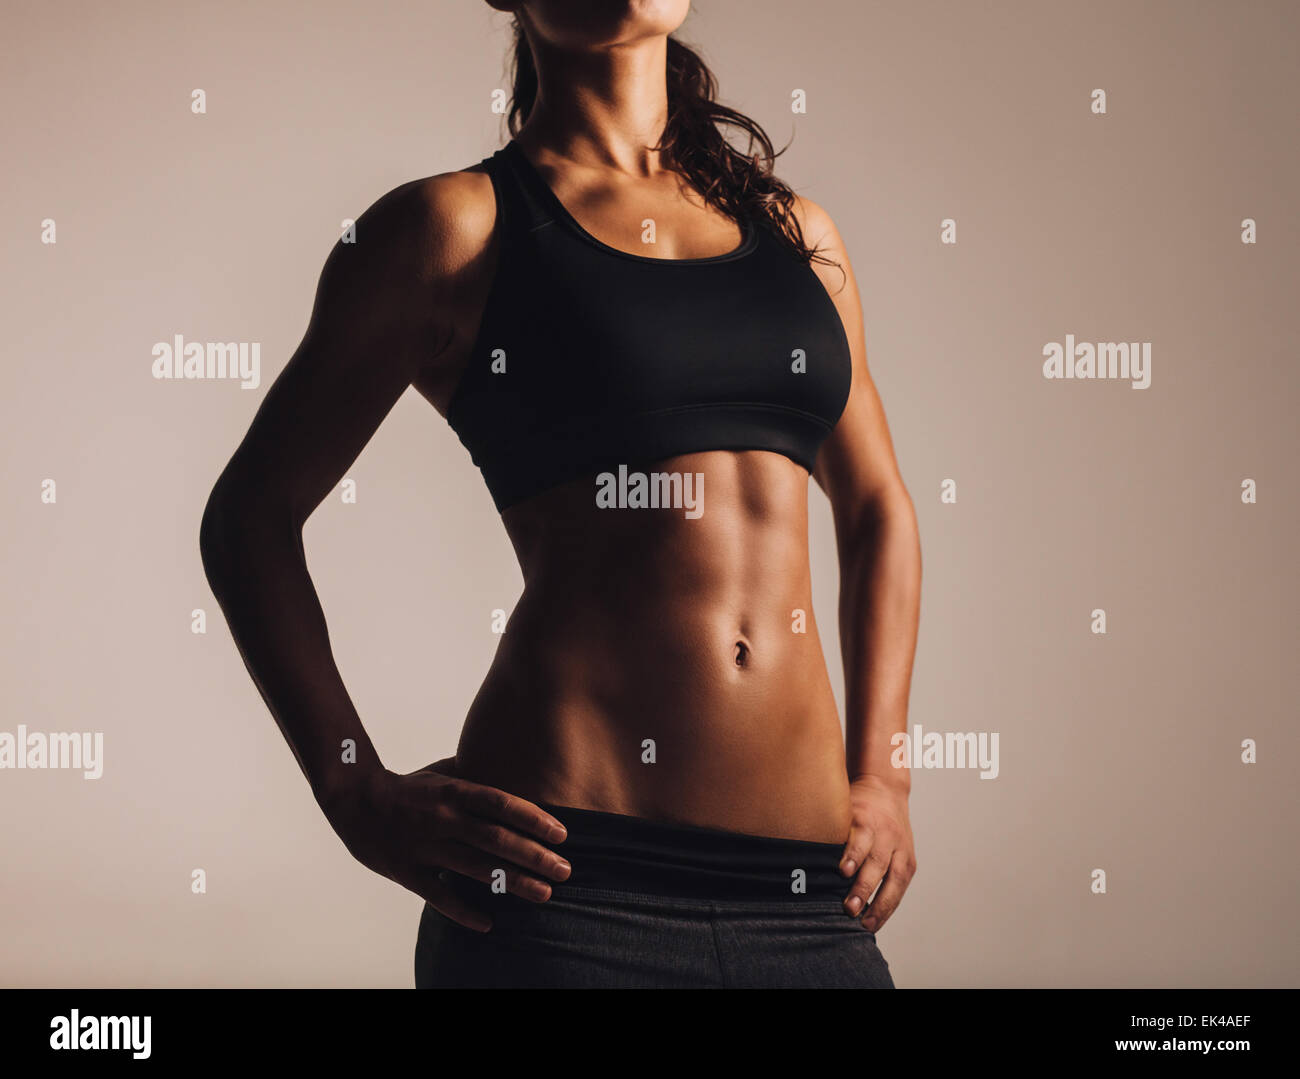 Fitness female model torso with her hands on hips. Female with perfect abdomen muscles. - Stock Image